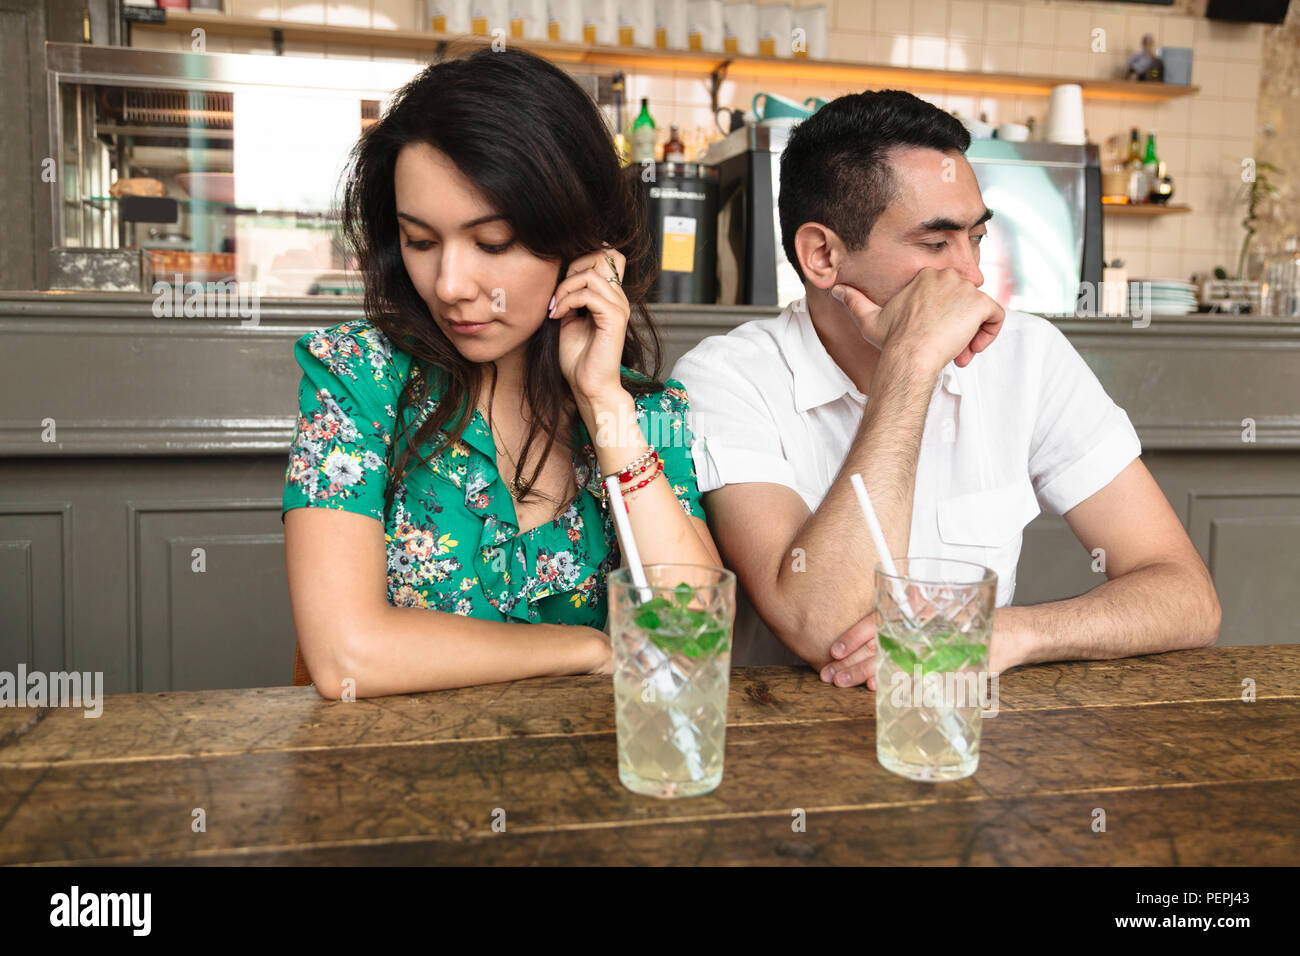 Young couple turned away from each other Stock Photo